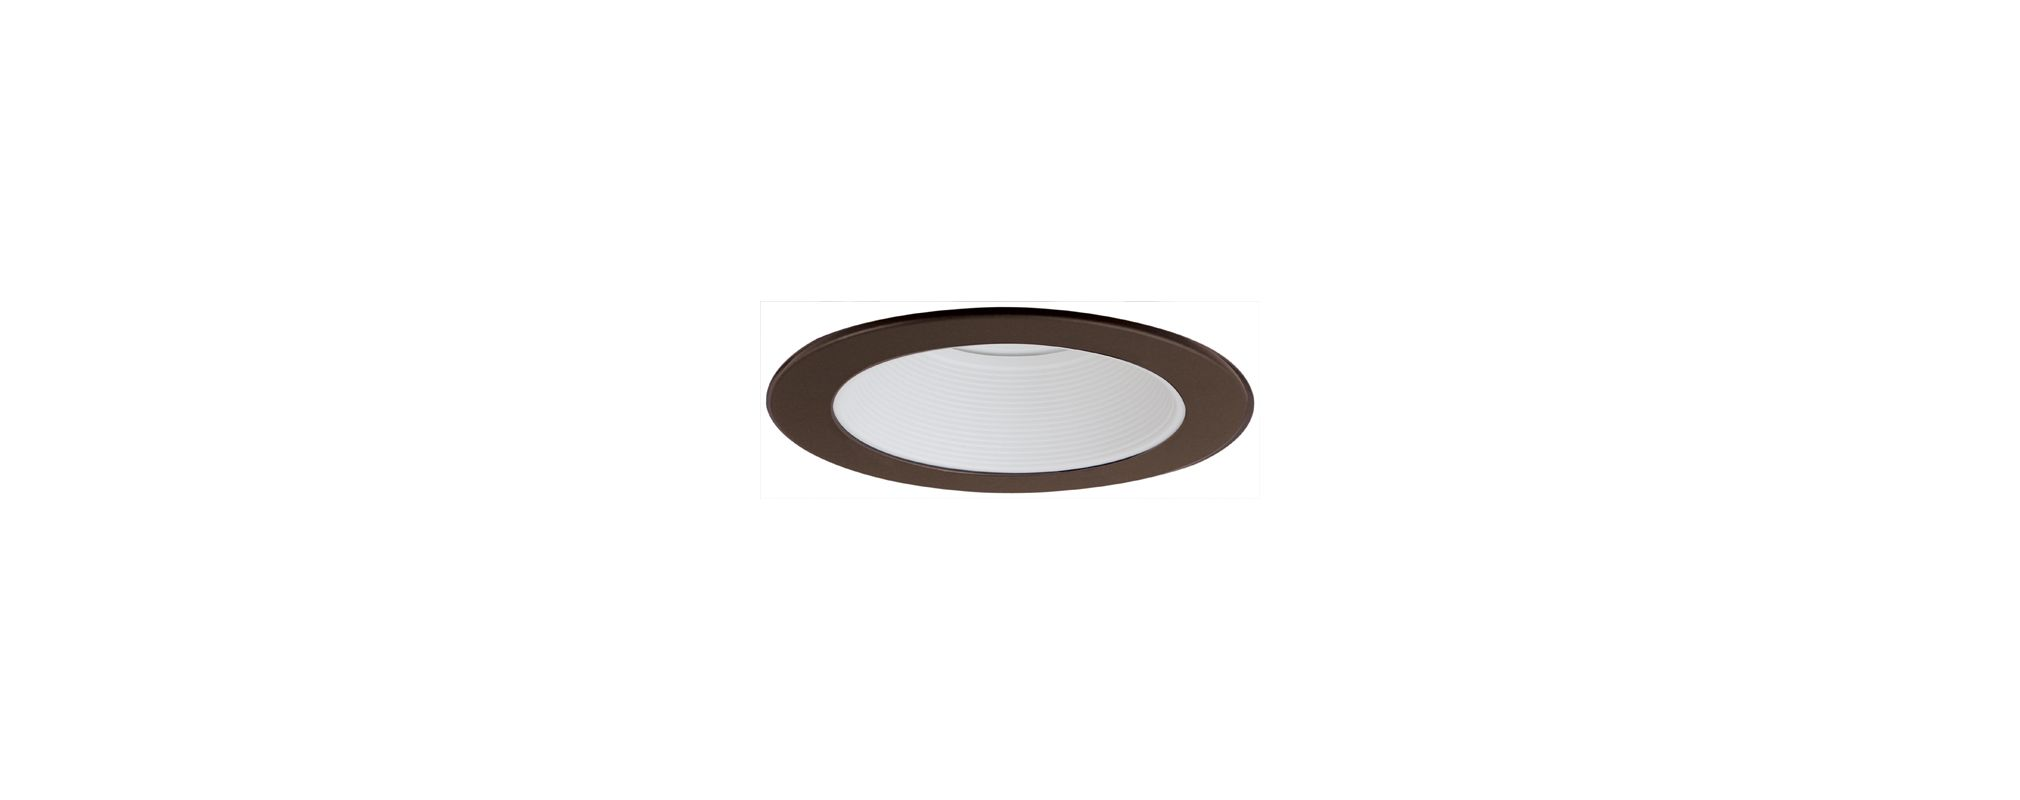 "Elco EL993 4"" Phenolic Baffle with Metal Ring White / Bronze Recessed"